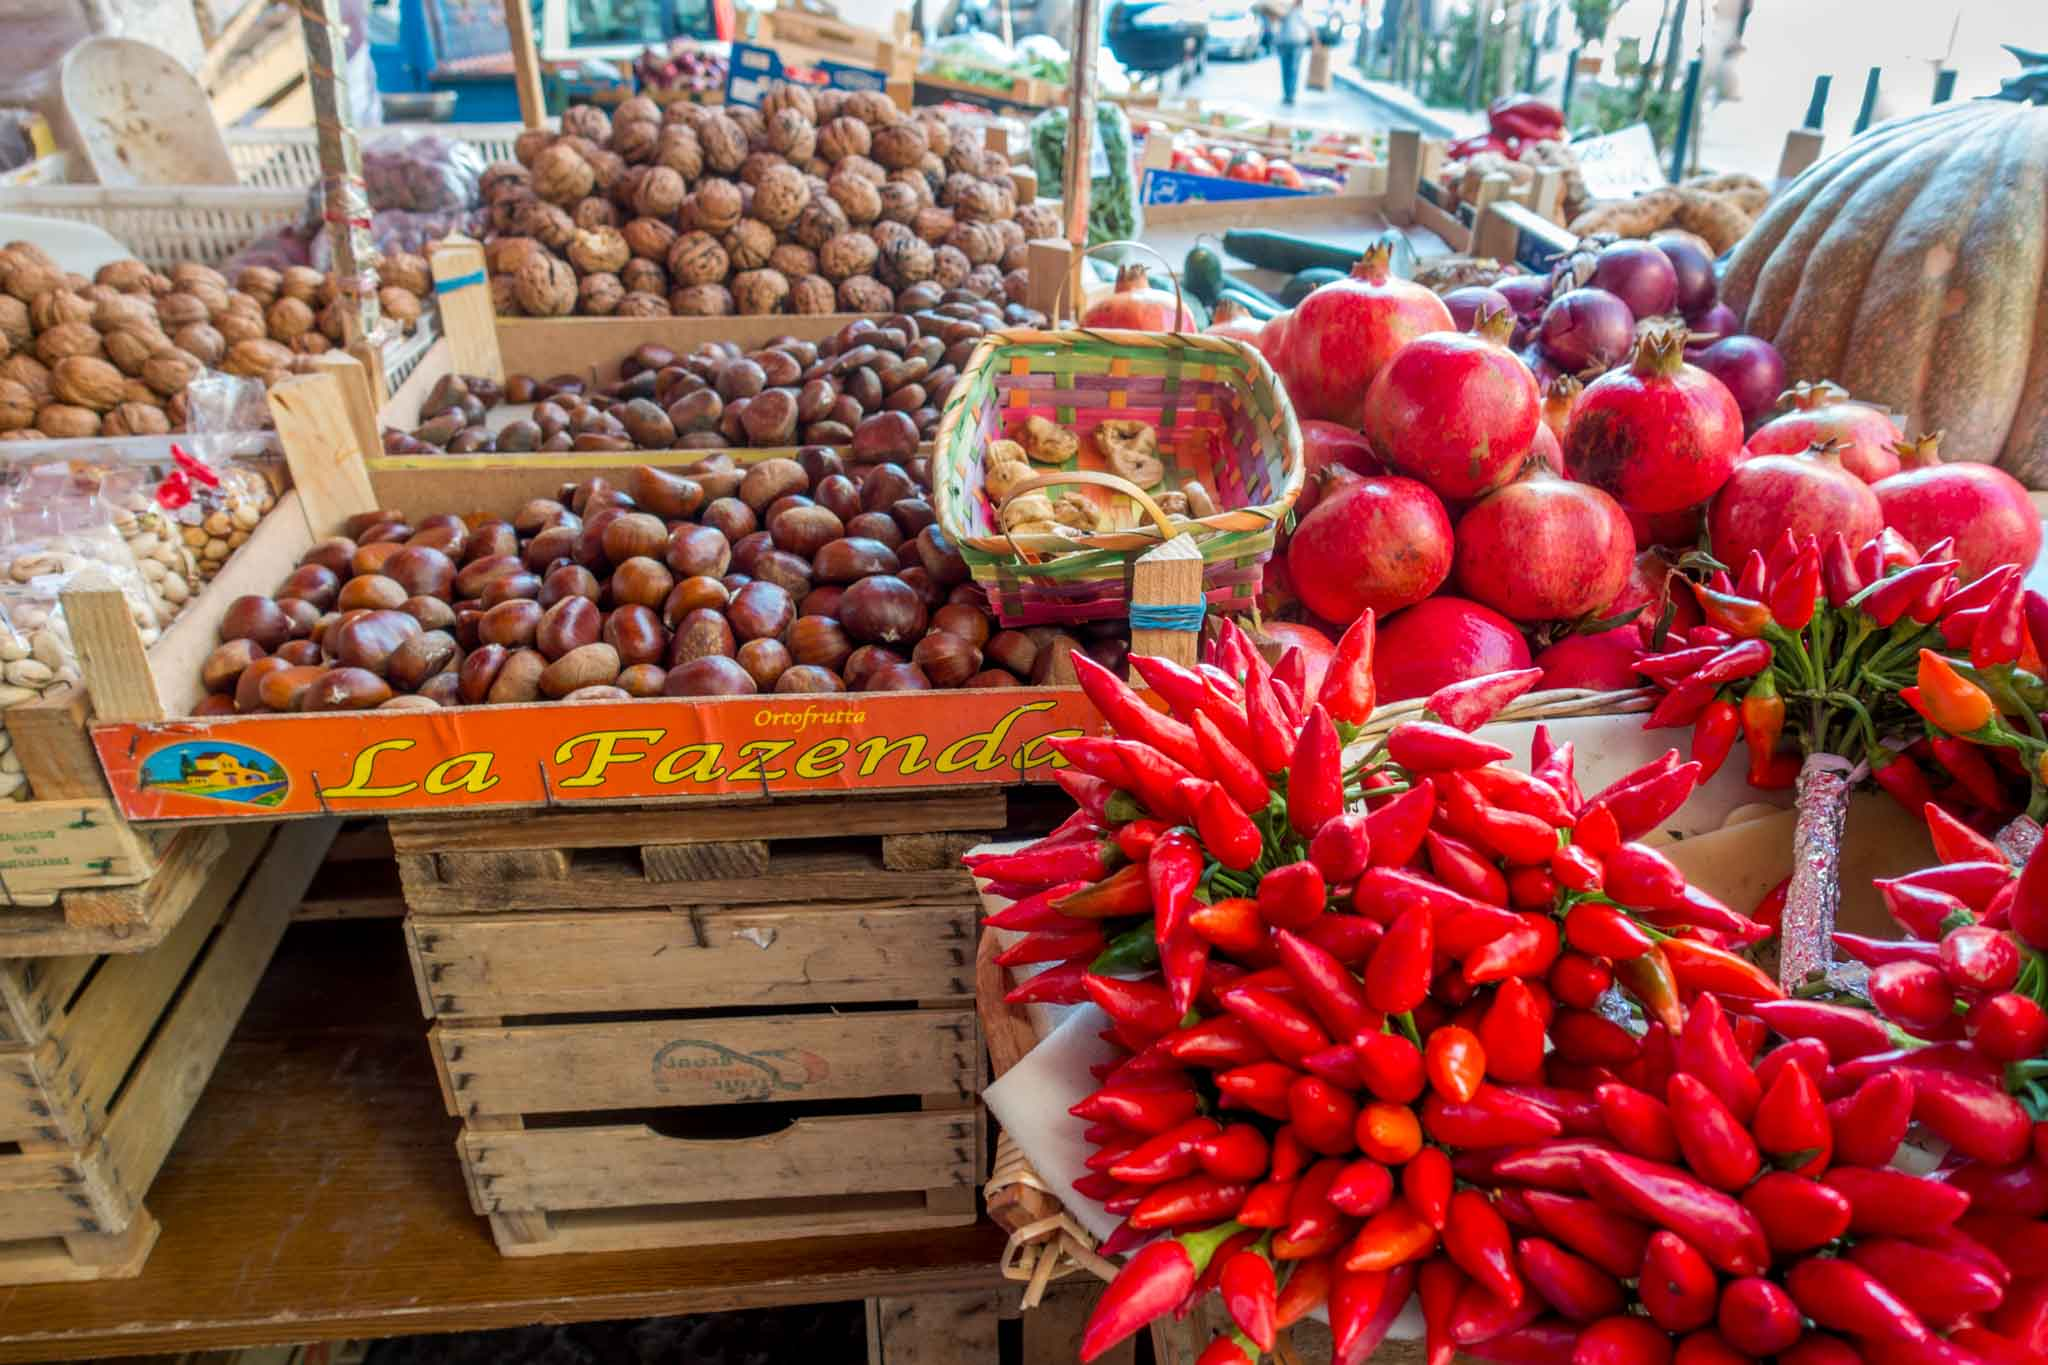 Peppers and nuts displayed for sale